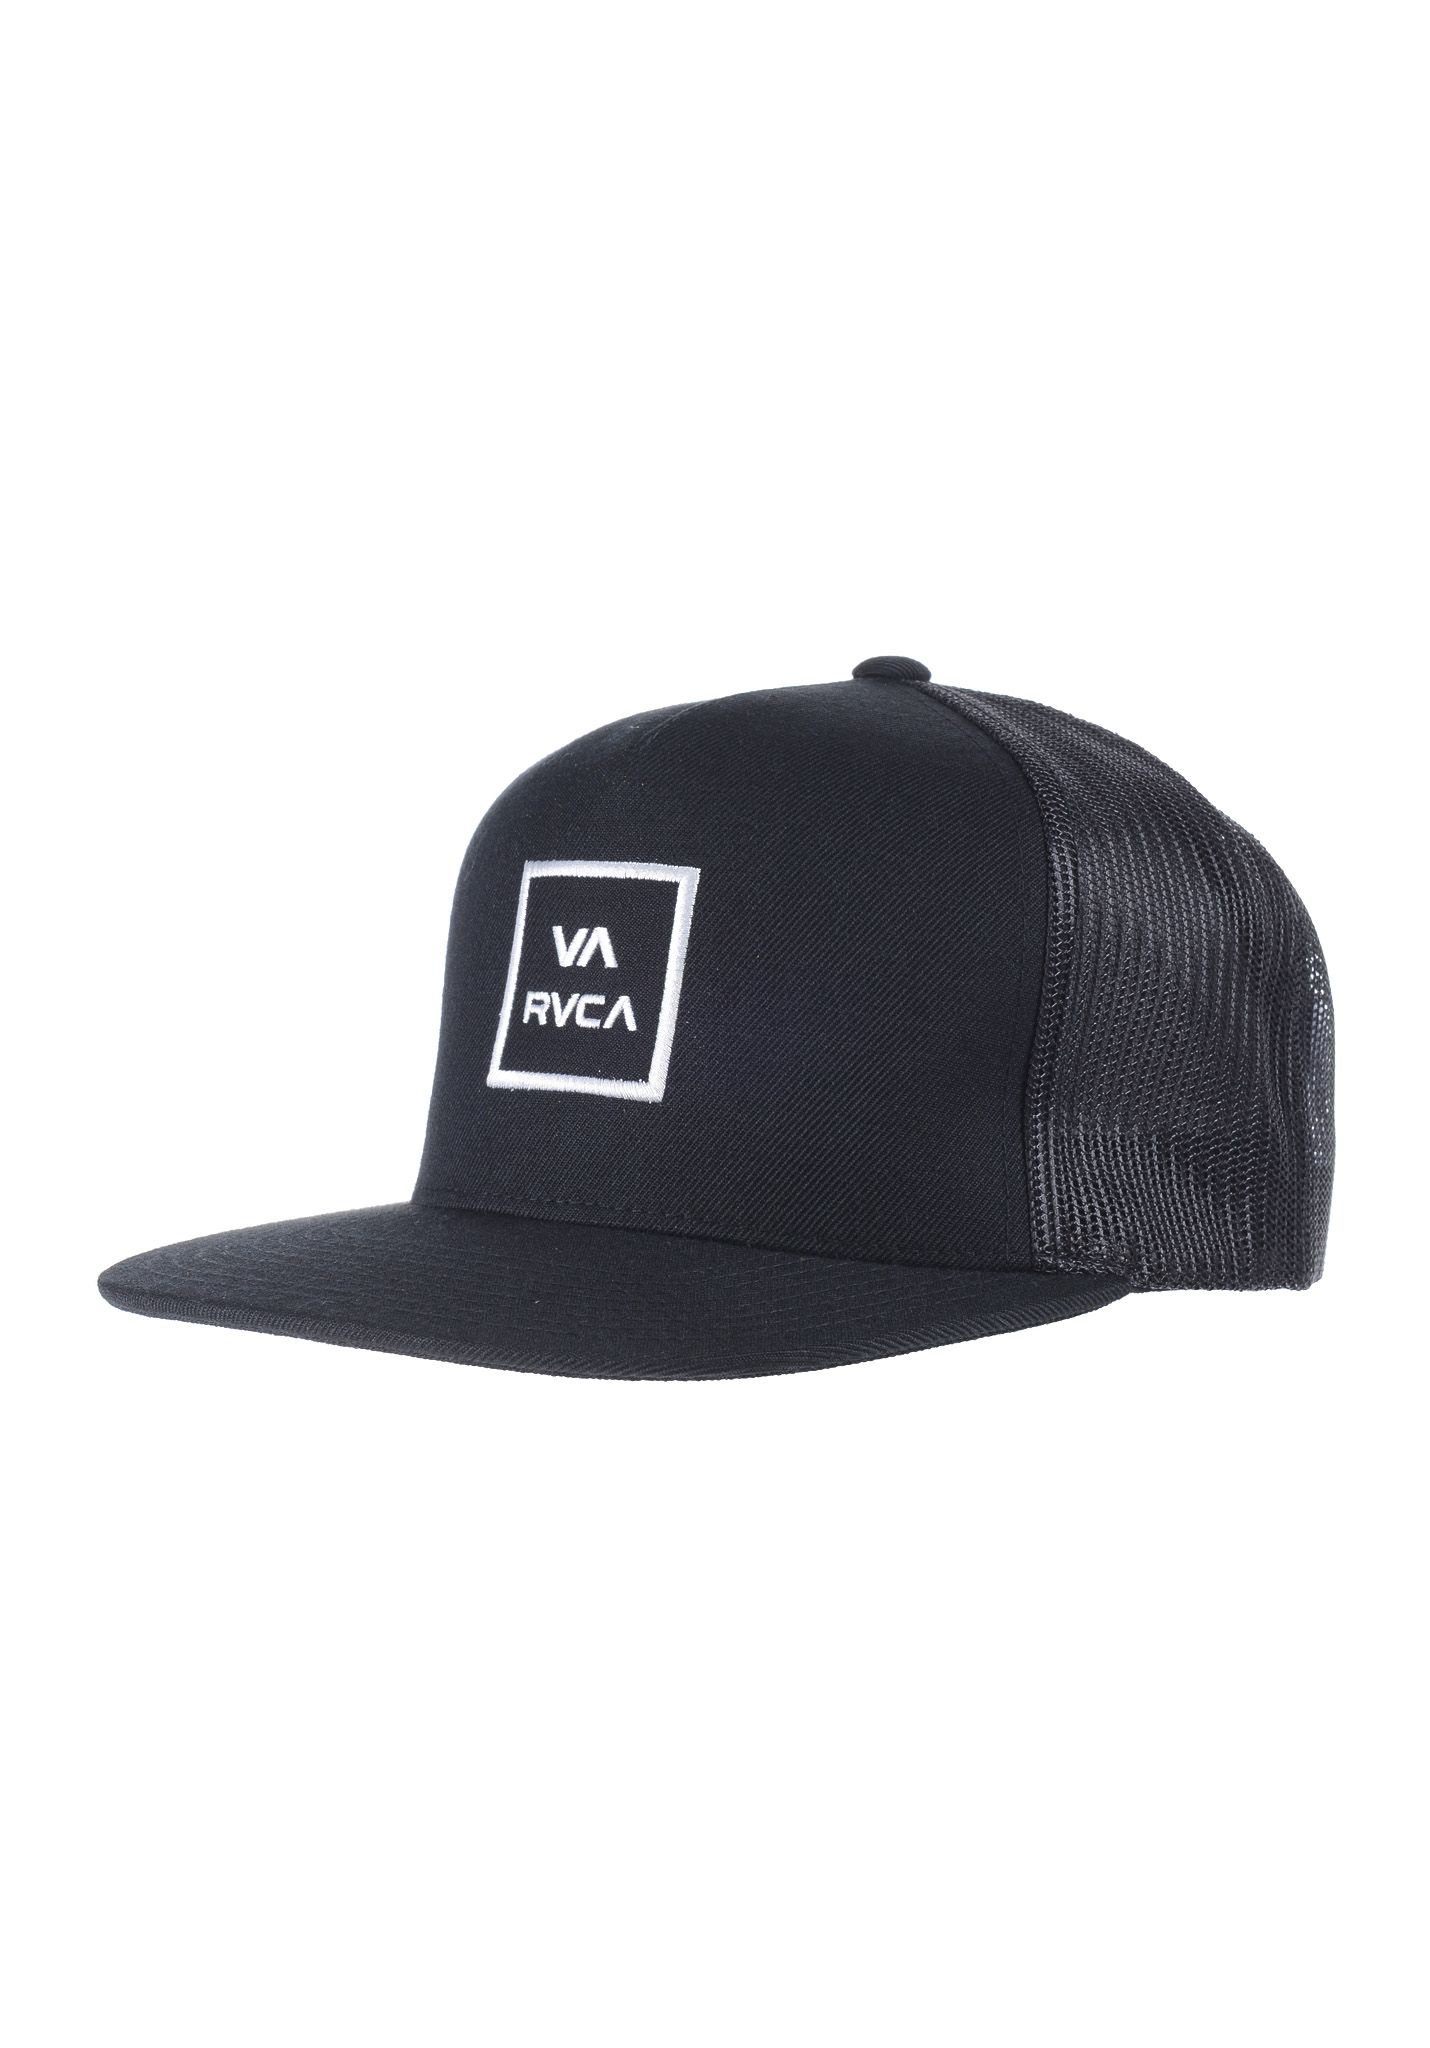 RVCA Va All The Way Ct III - Gorra de camionero - Negro - Planet Sports eaf0bc11be1